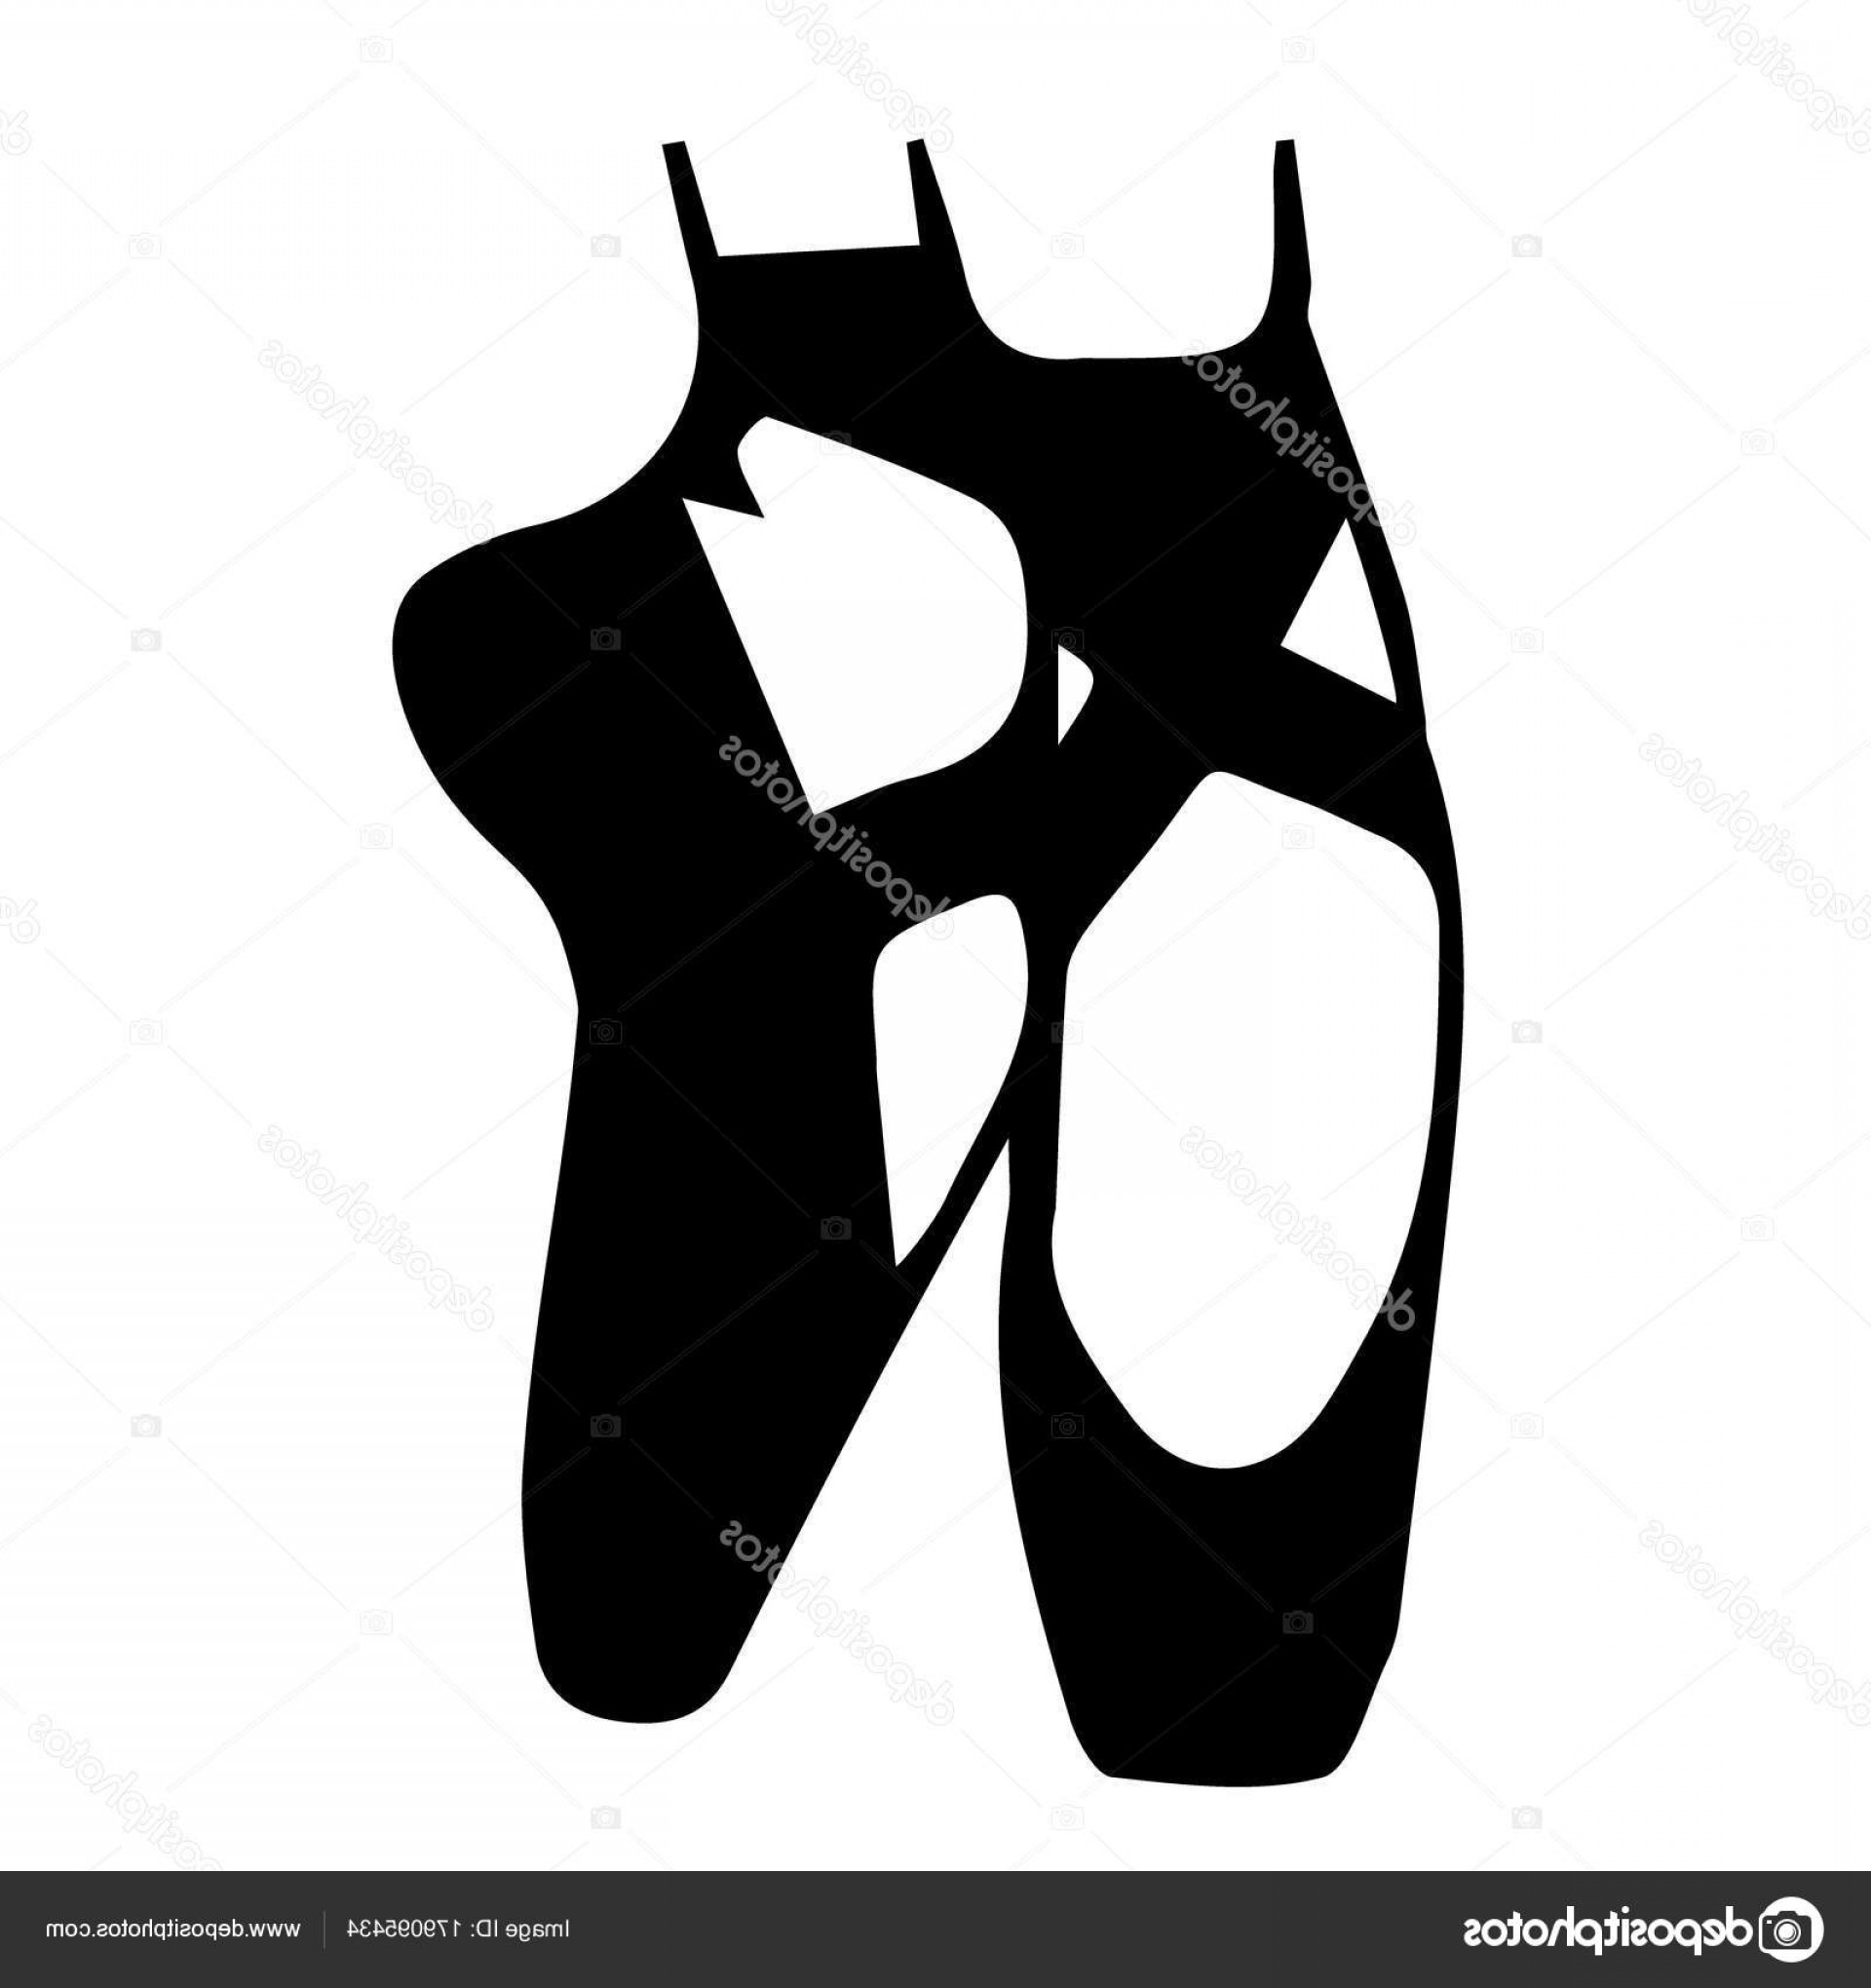 1920x2040 Stock Illustration Silhouette Of Ballet Shoes Vector Shopatcloth